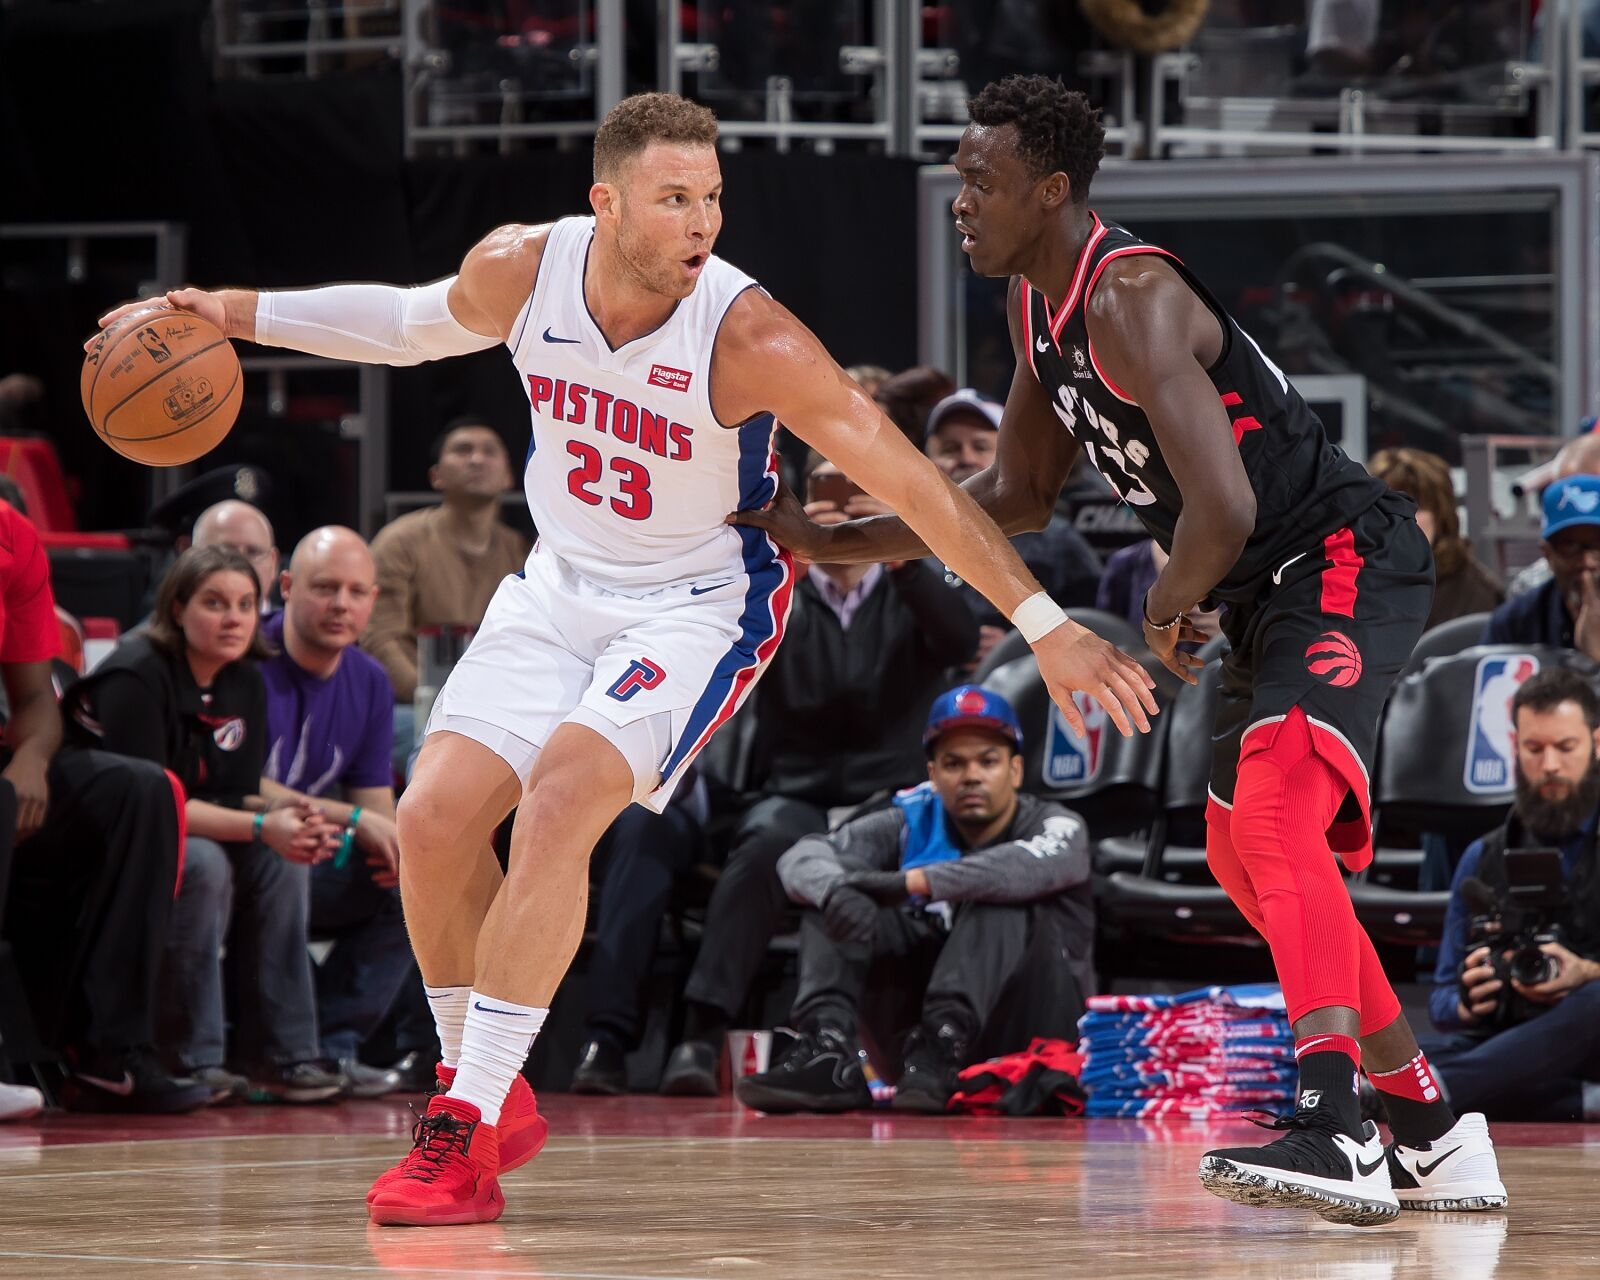 Power ranking the 2018-19 Detroit Pistons: Who tops the list?